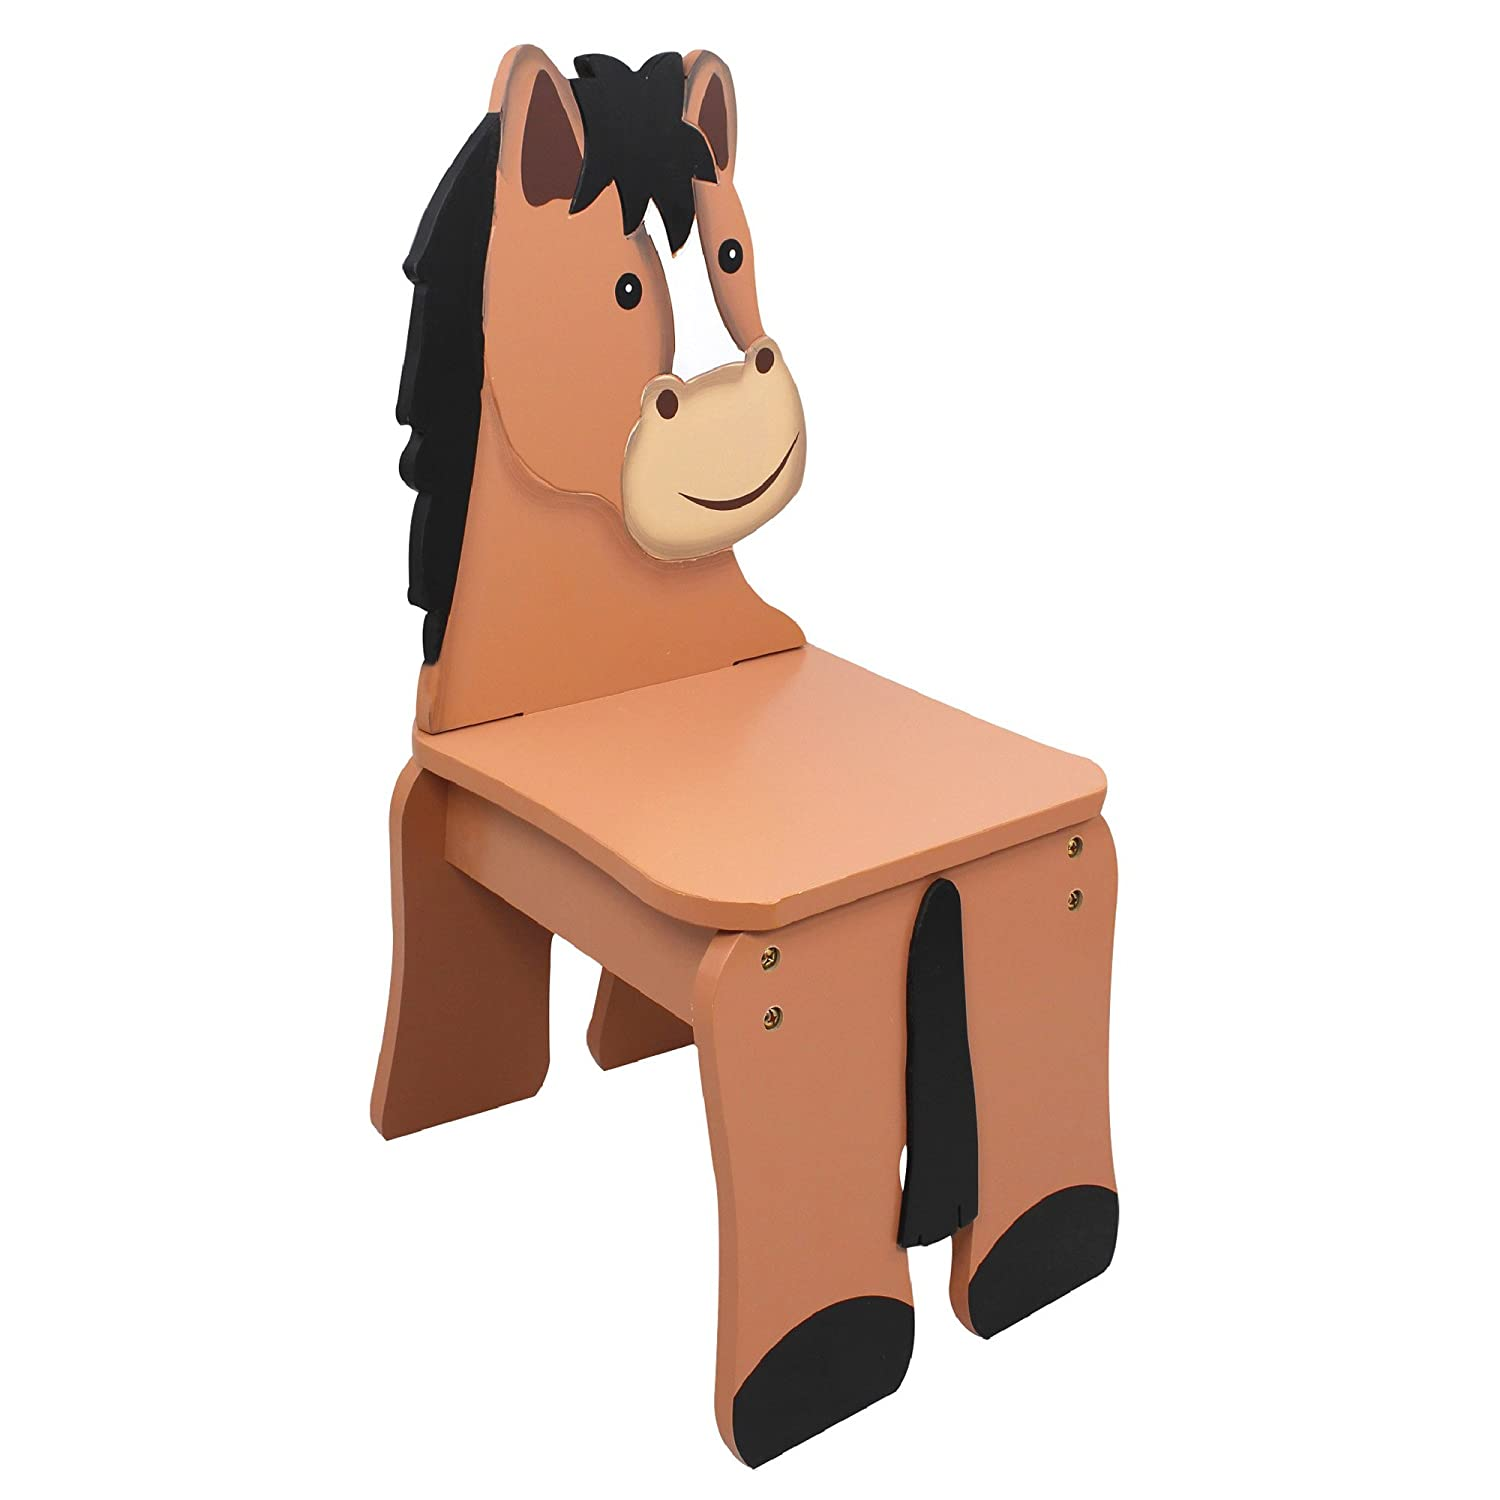 Superb Amazon.com: Fantasy Fields   Happy Farm Animals Thematic Kids Wooden Horse  Chair | Imagination Inspiring Hand Crafted U0026 Hand Painted Details |  Non Toxic, ...